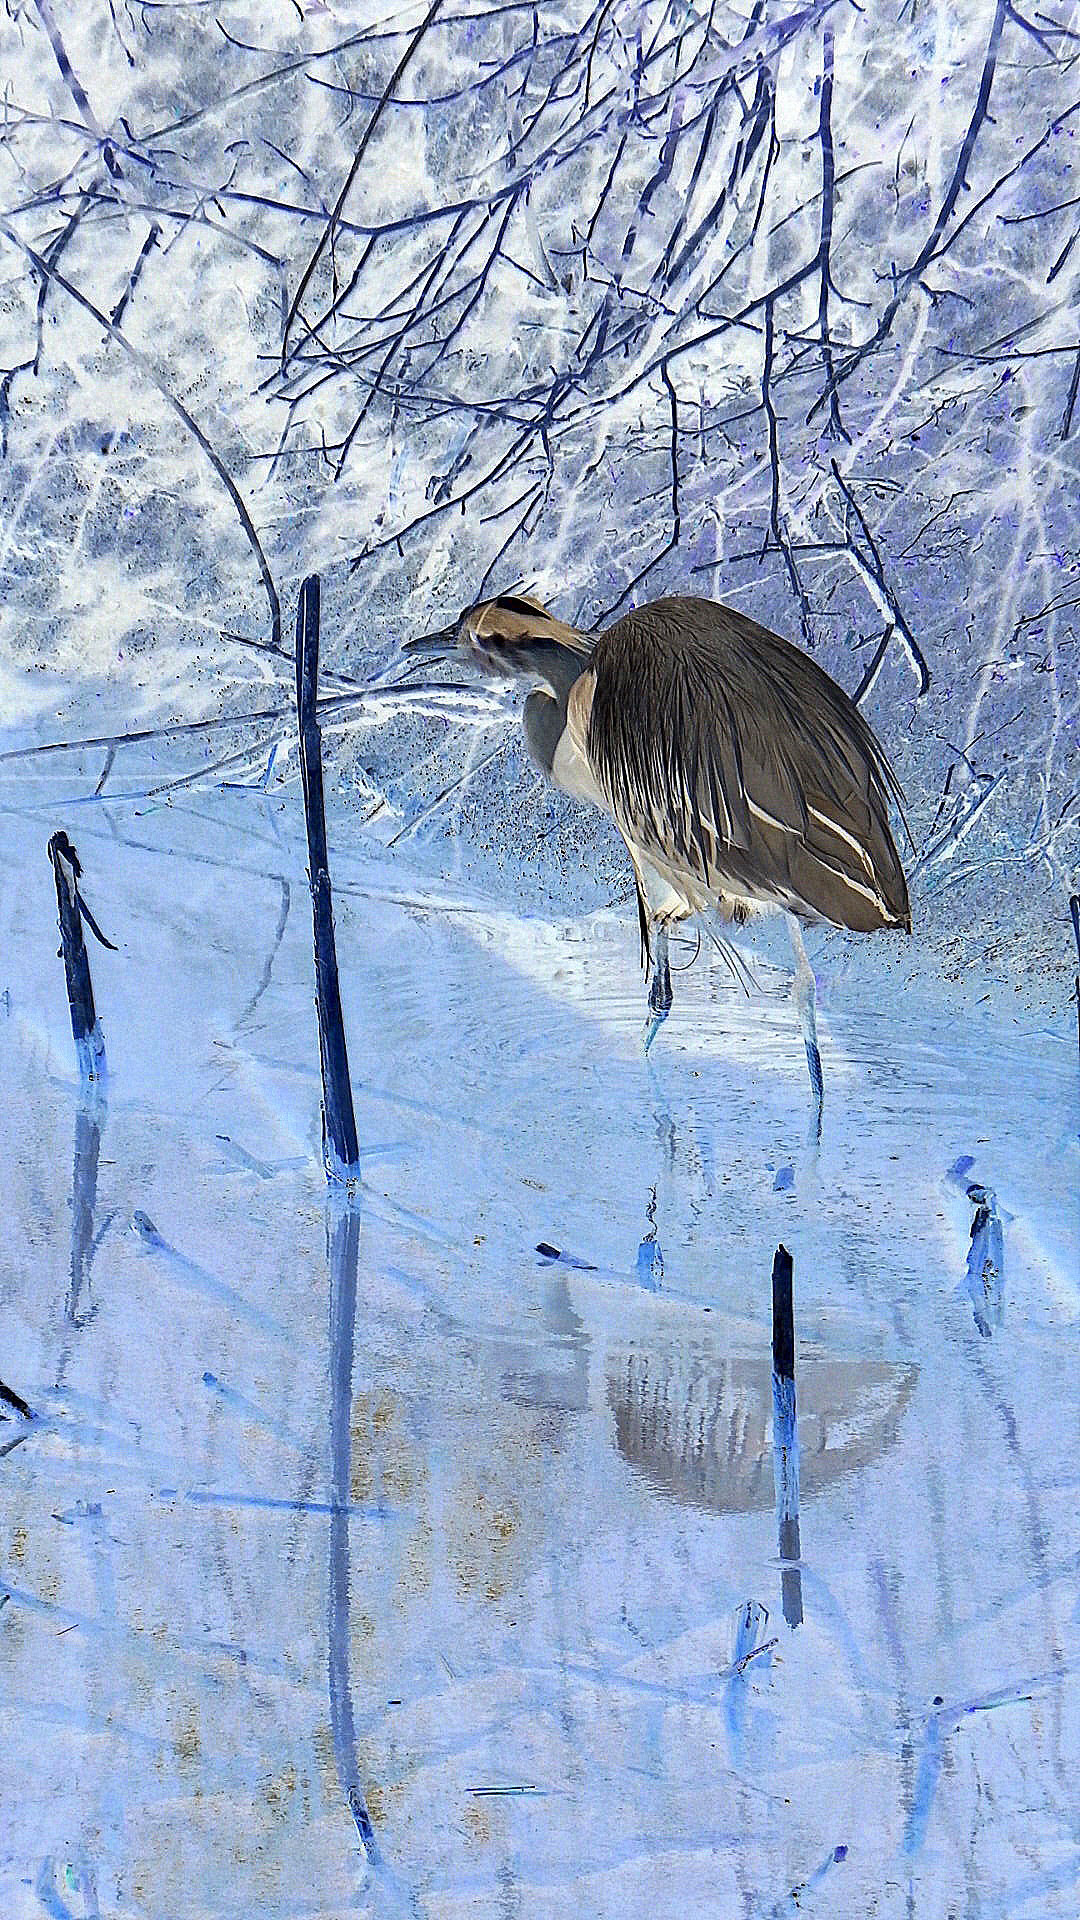 a photo of a heron in ice by Carole MacRury